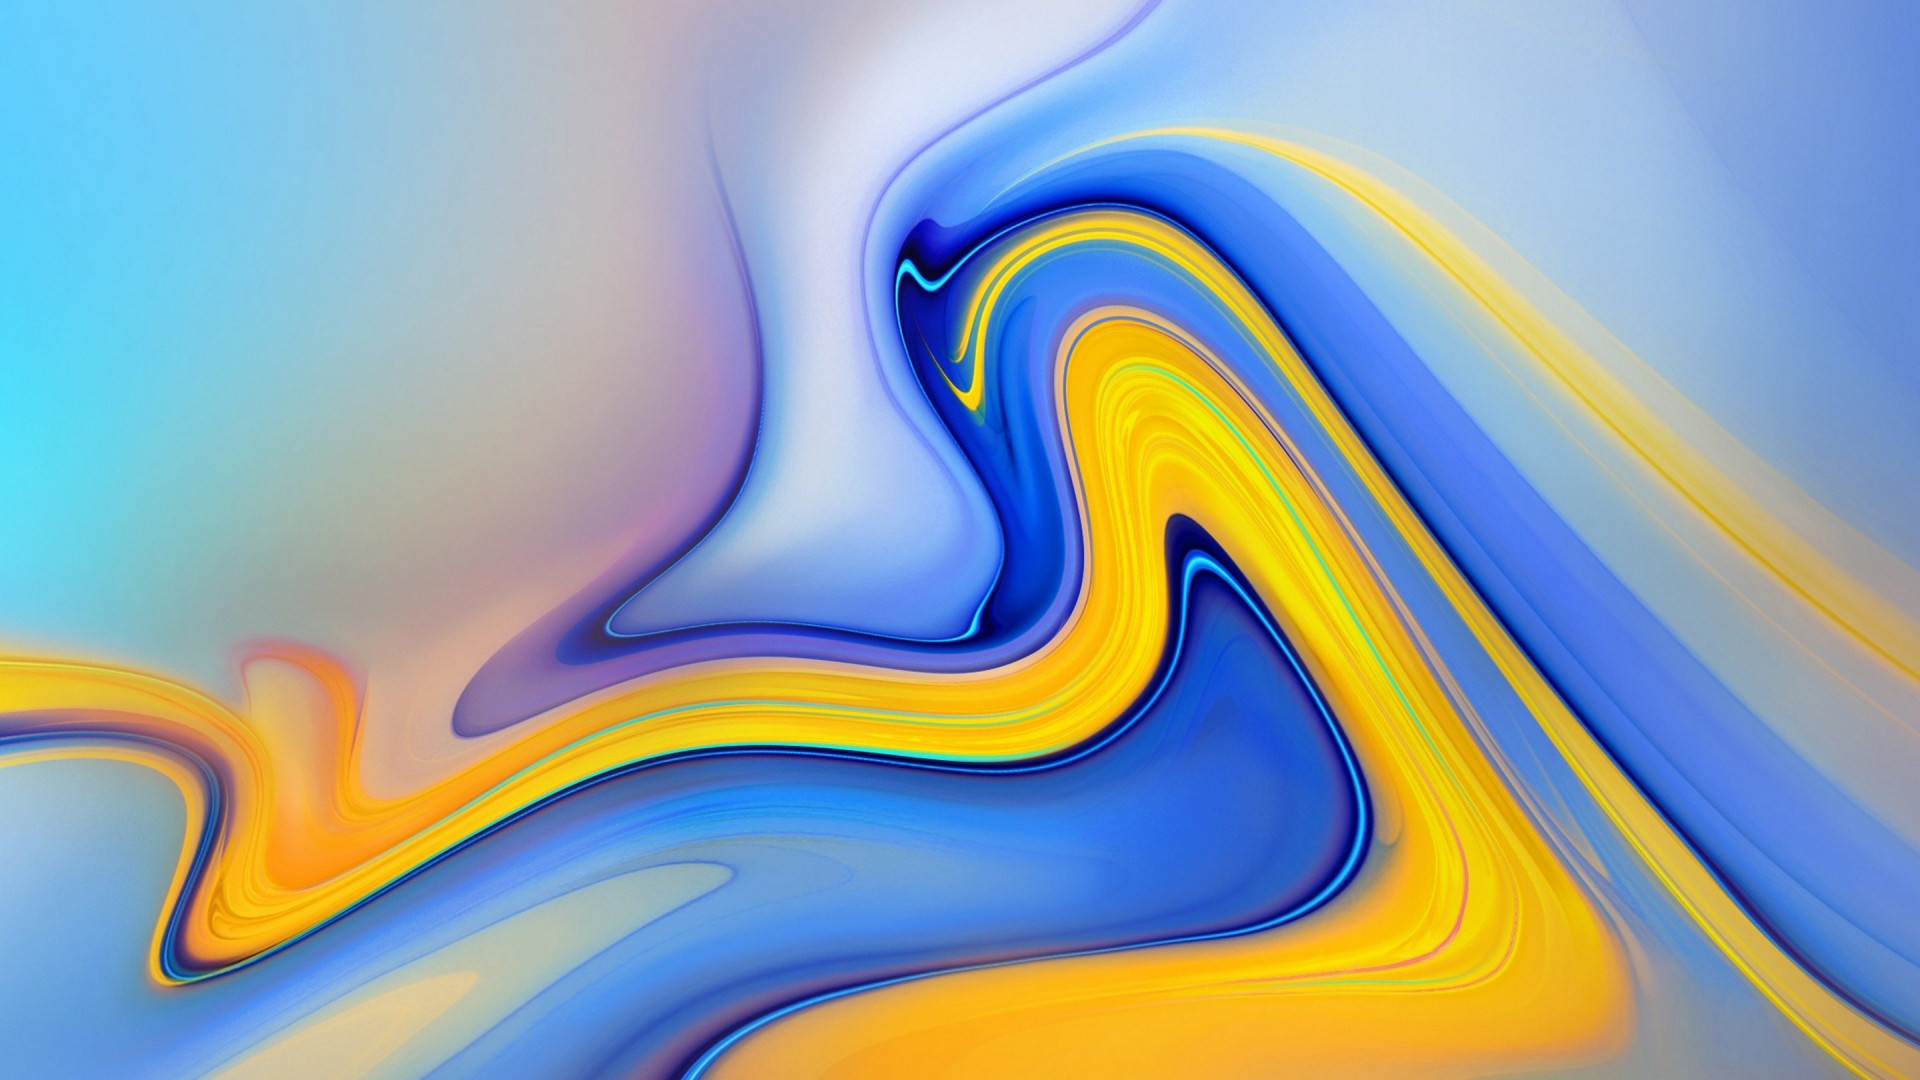 Samsung Galaxy Note 9 wallpaper 1920x1080